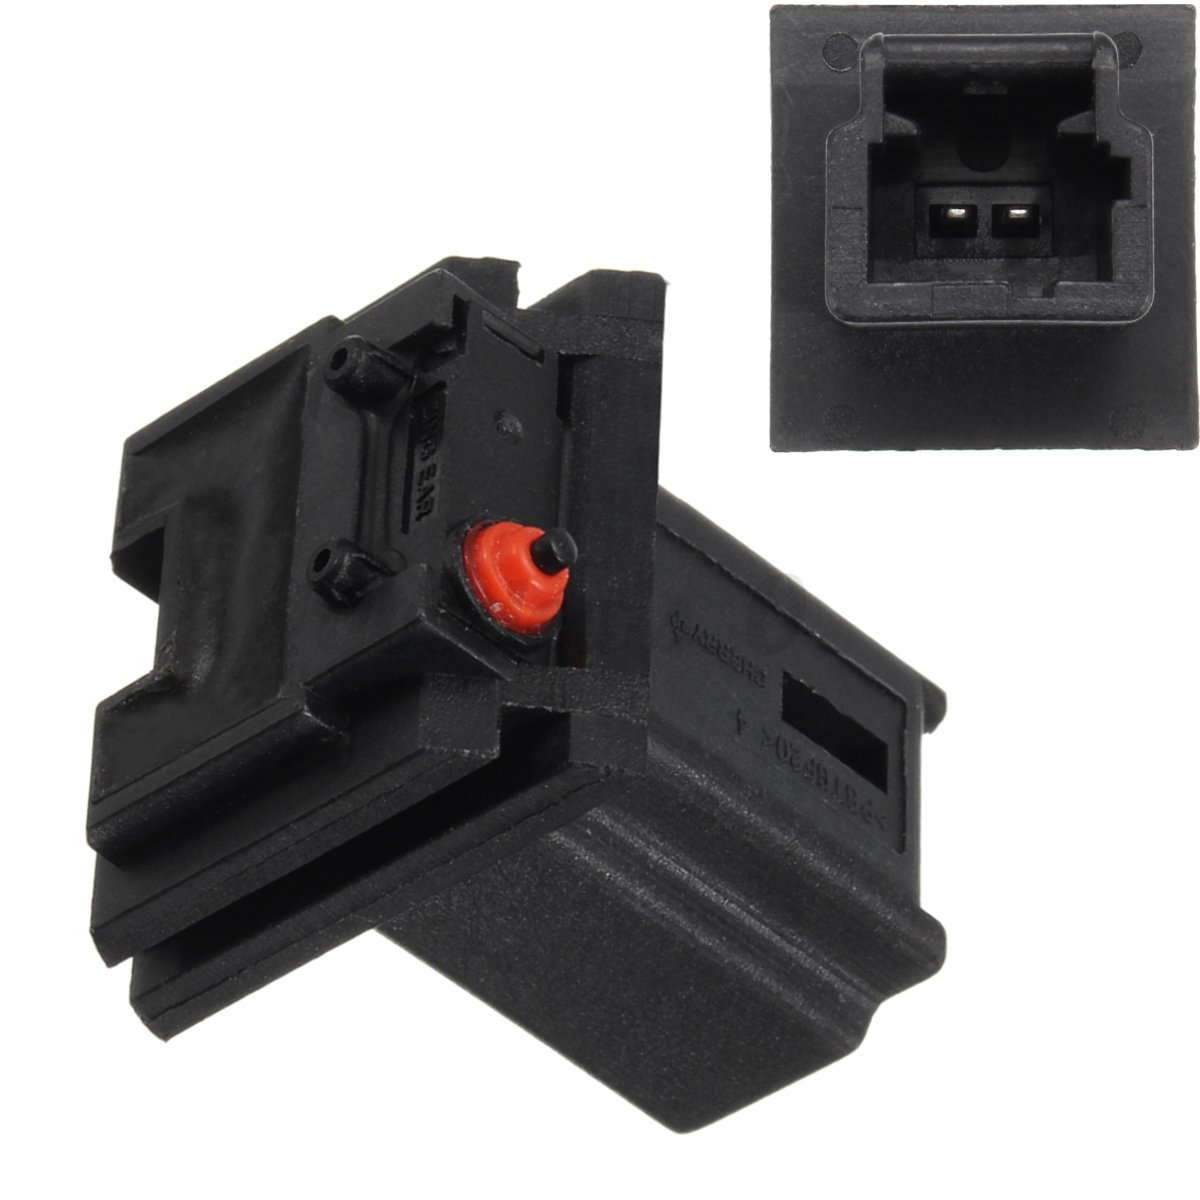 tailgate boot contact micro switch for citroen c3 c3 pluriel c3 picasso 6554v5 ebay. Black Bedroom Furniture Sets. Home Design Ideas